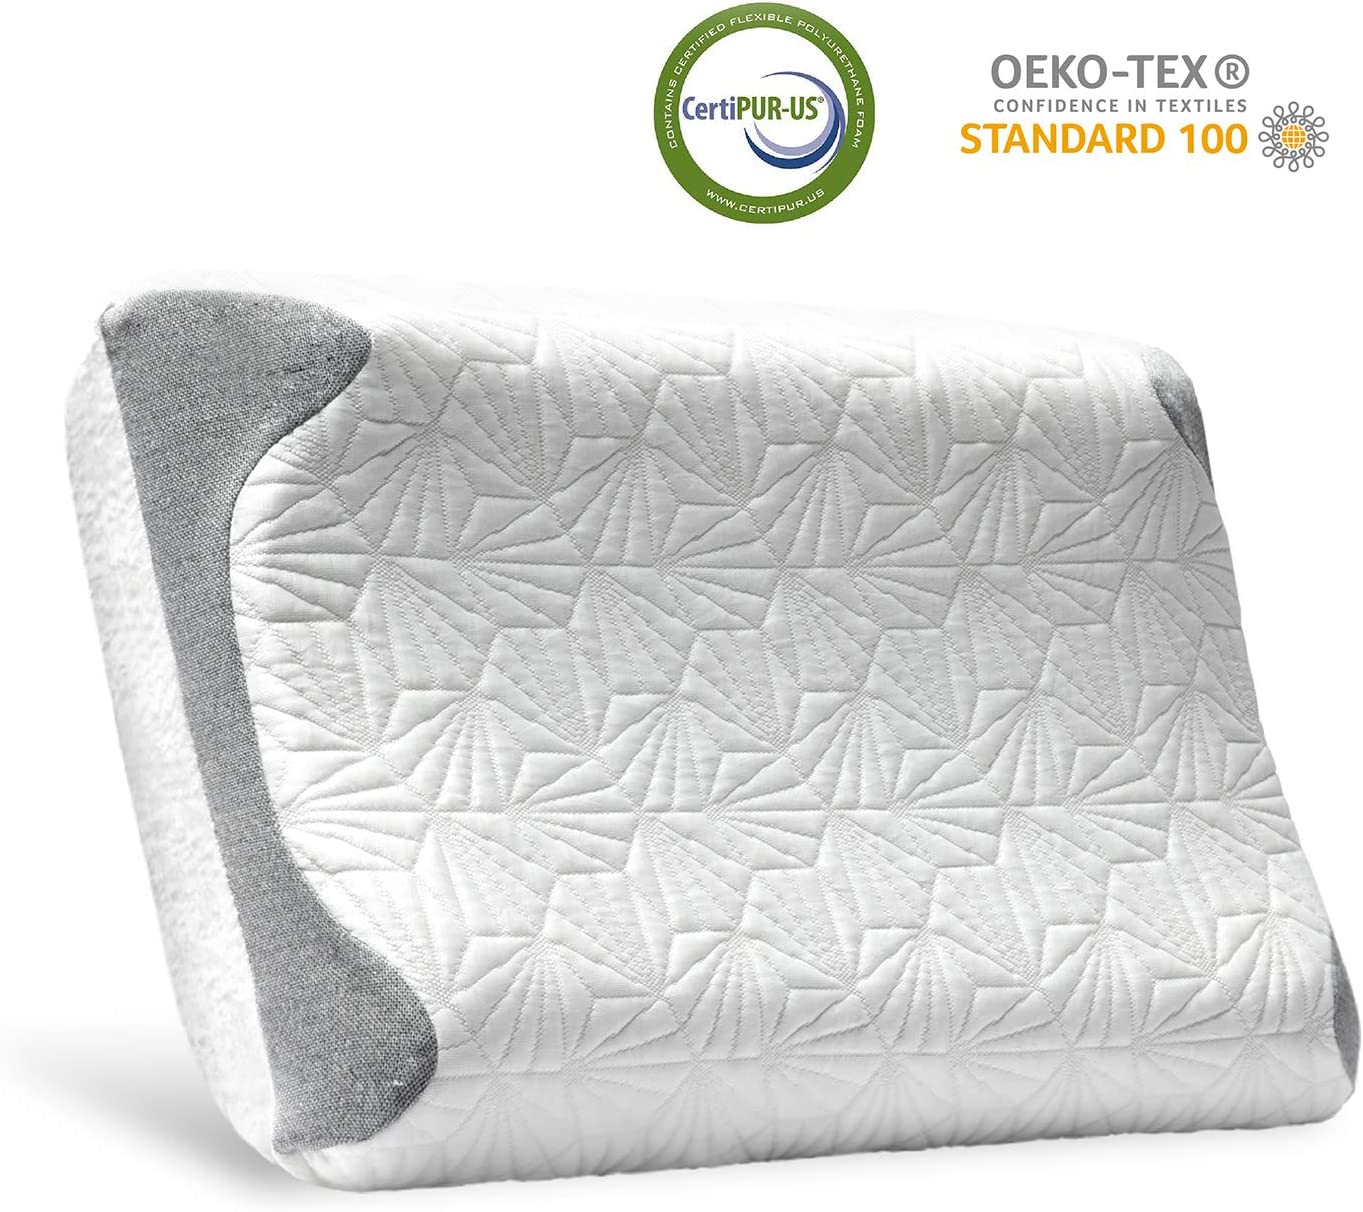 Bedsure Memory Foam Pillow Contour Pillow for Sleeping Cervical Support for Neck Pain with Washable Removable Cool & Warm Cover Standard Size